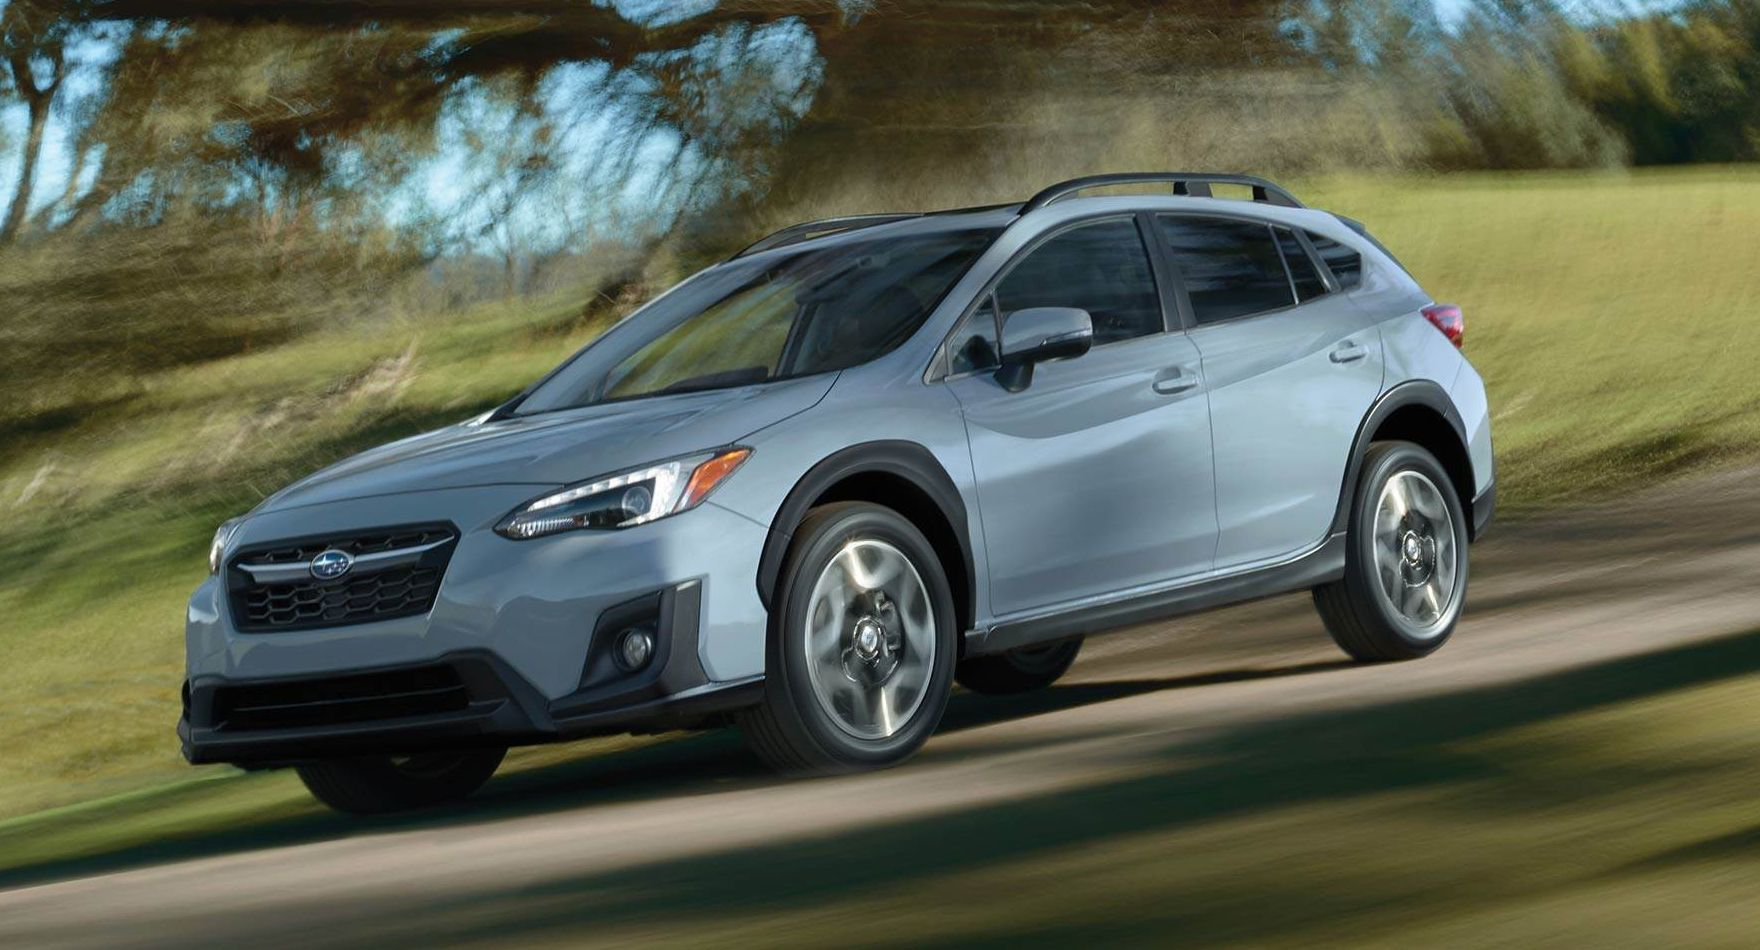 2018 Subaru Crosstrek For Sale In Catskill Ny Rc Lacy